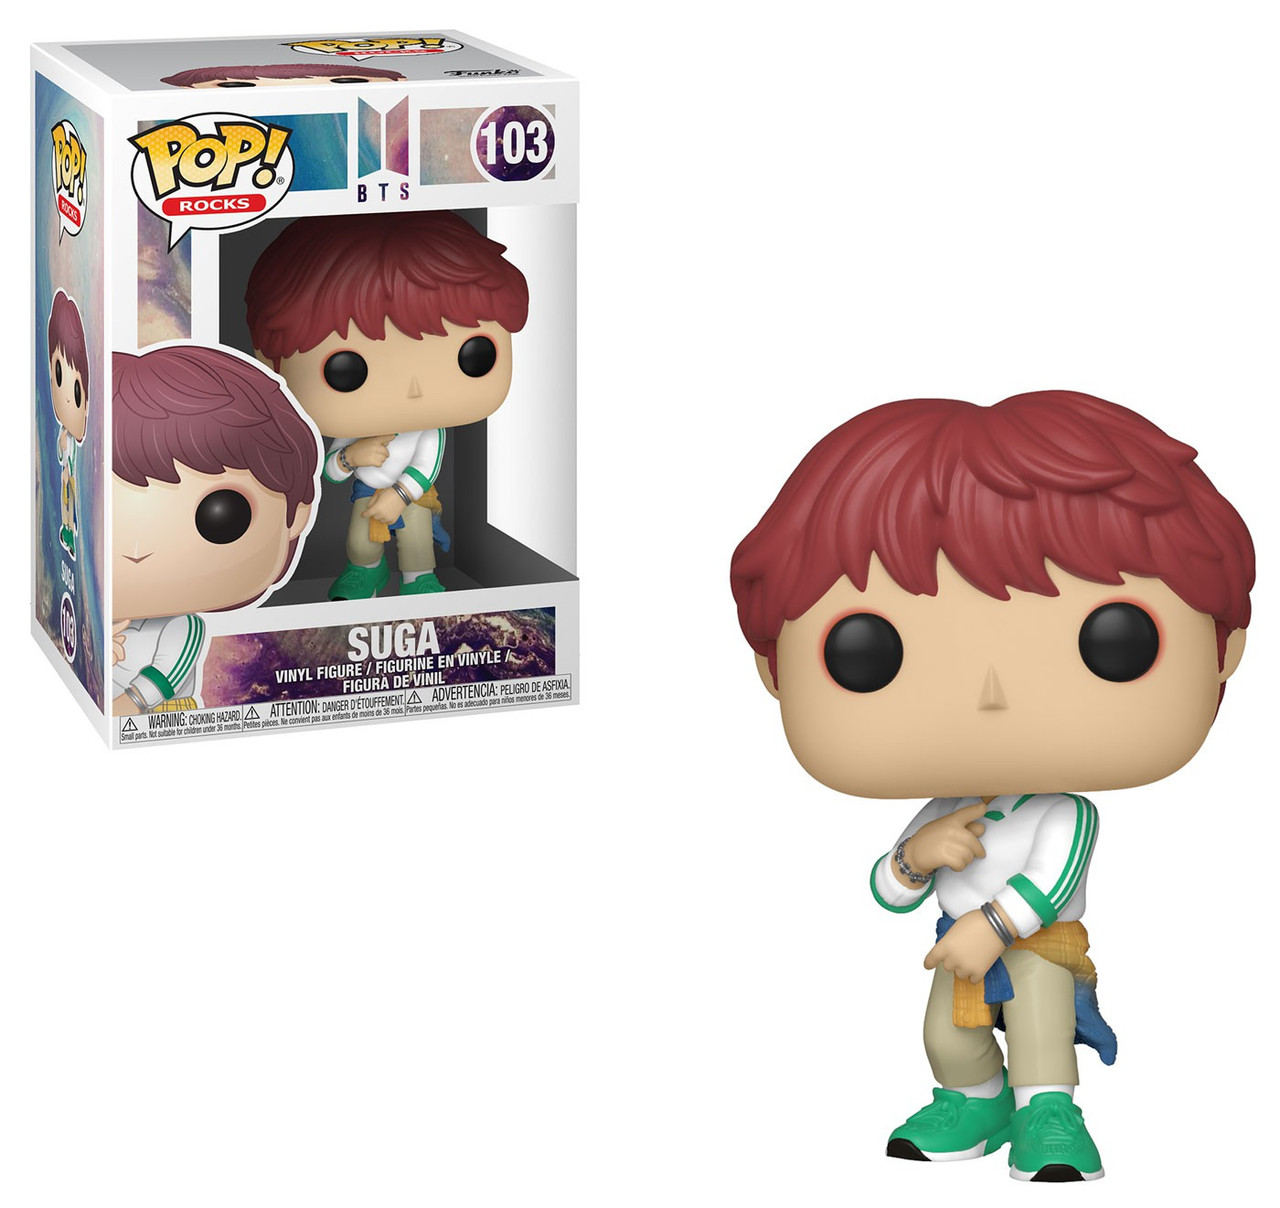 Figura in vinile #103 BTS-Suga Funko Pop POP Rocks